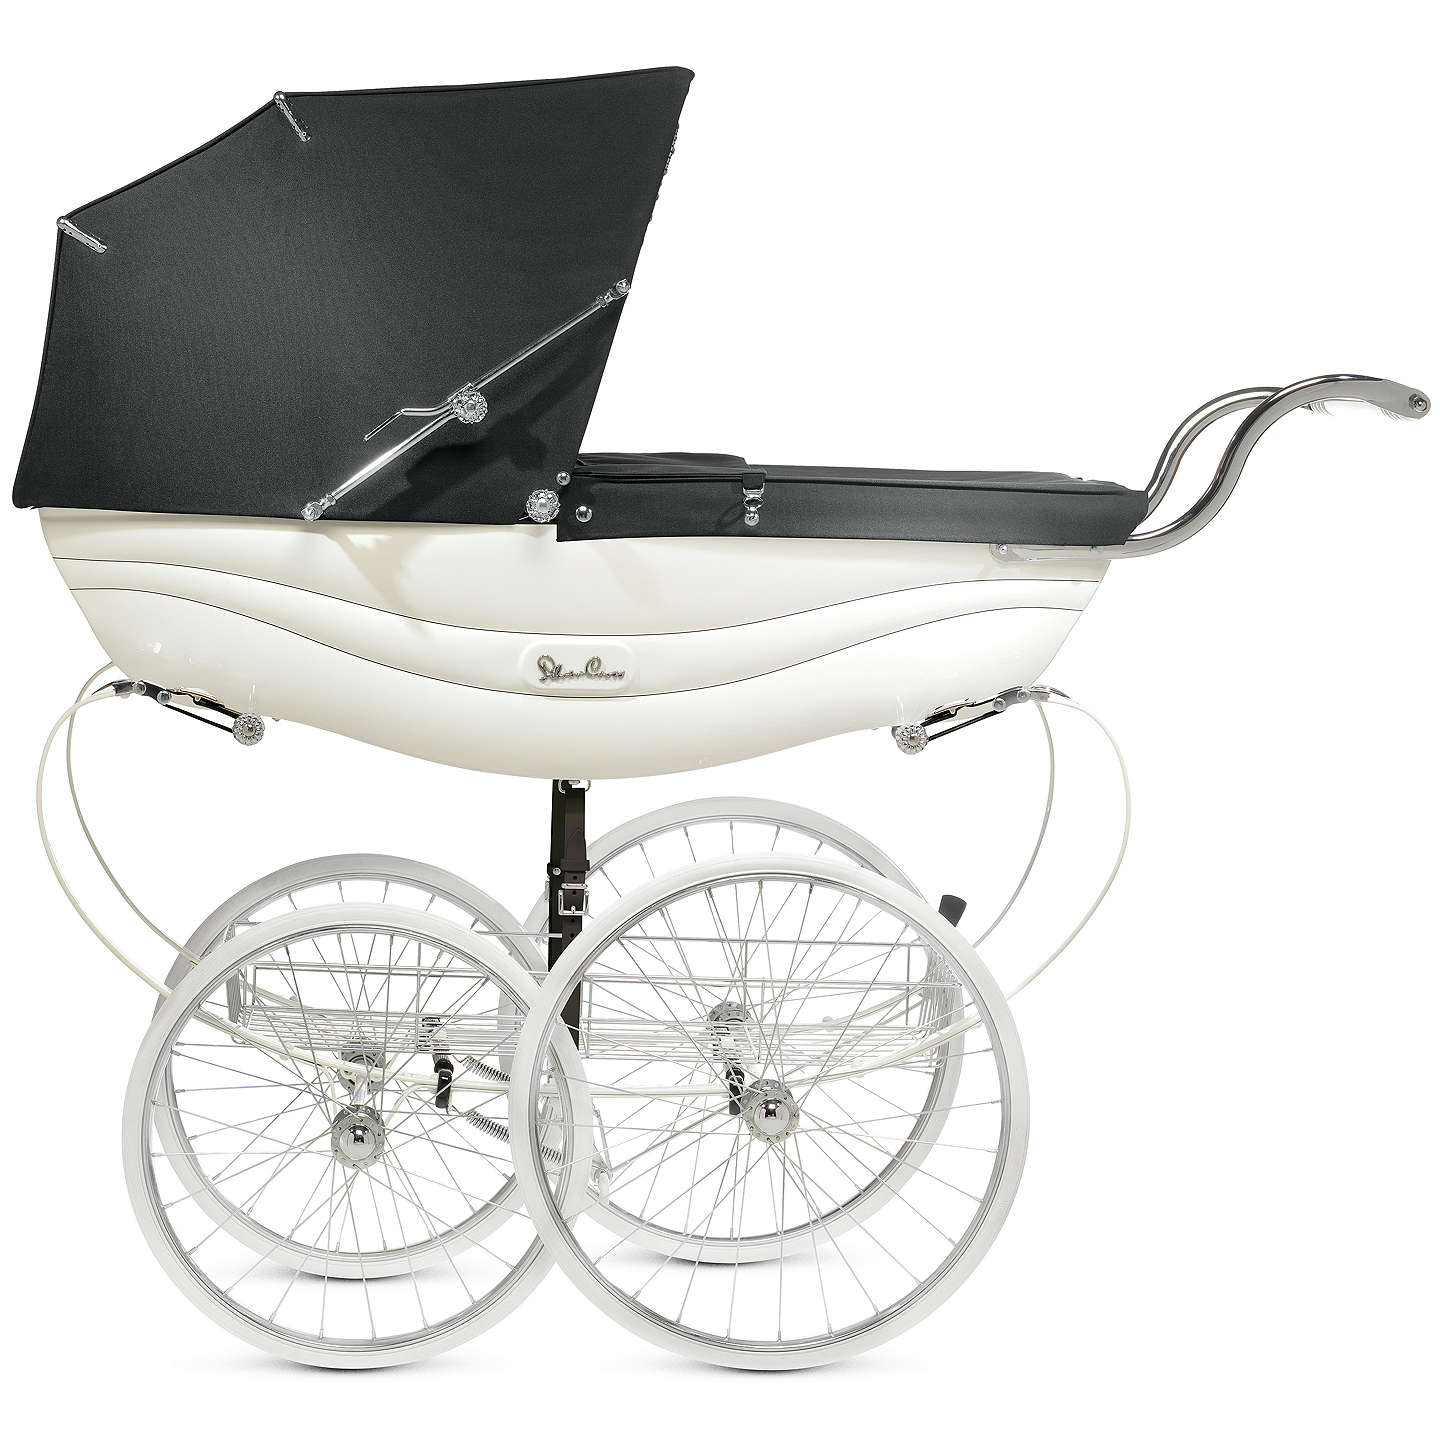 BuySilver Cross Balmoral Pram, White Gloss Online at johnlewis.com